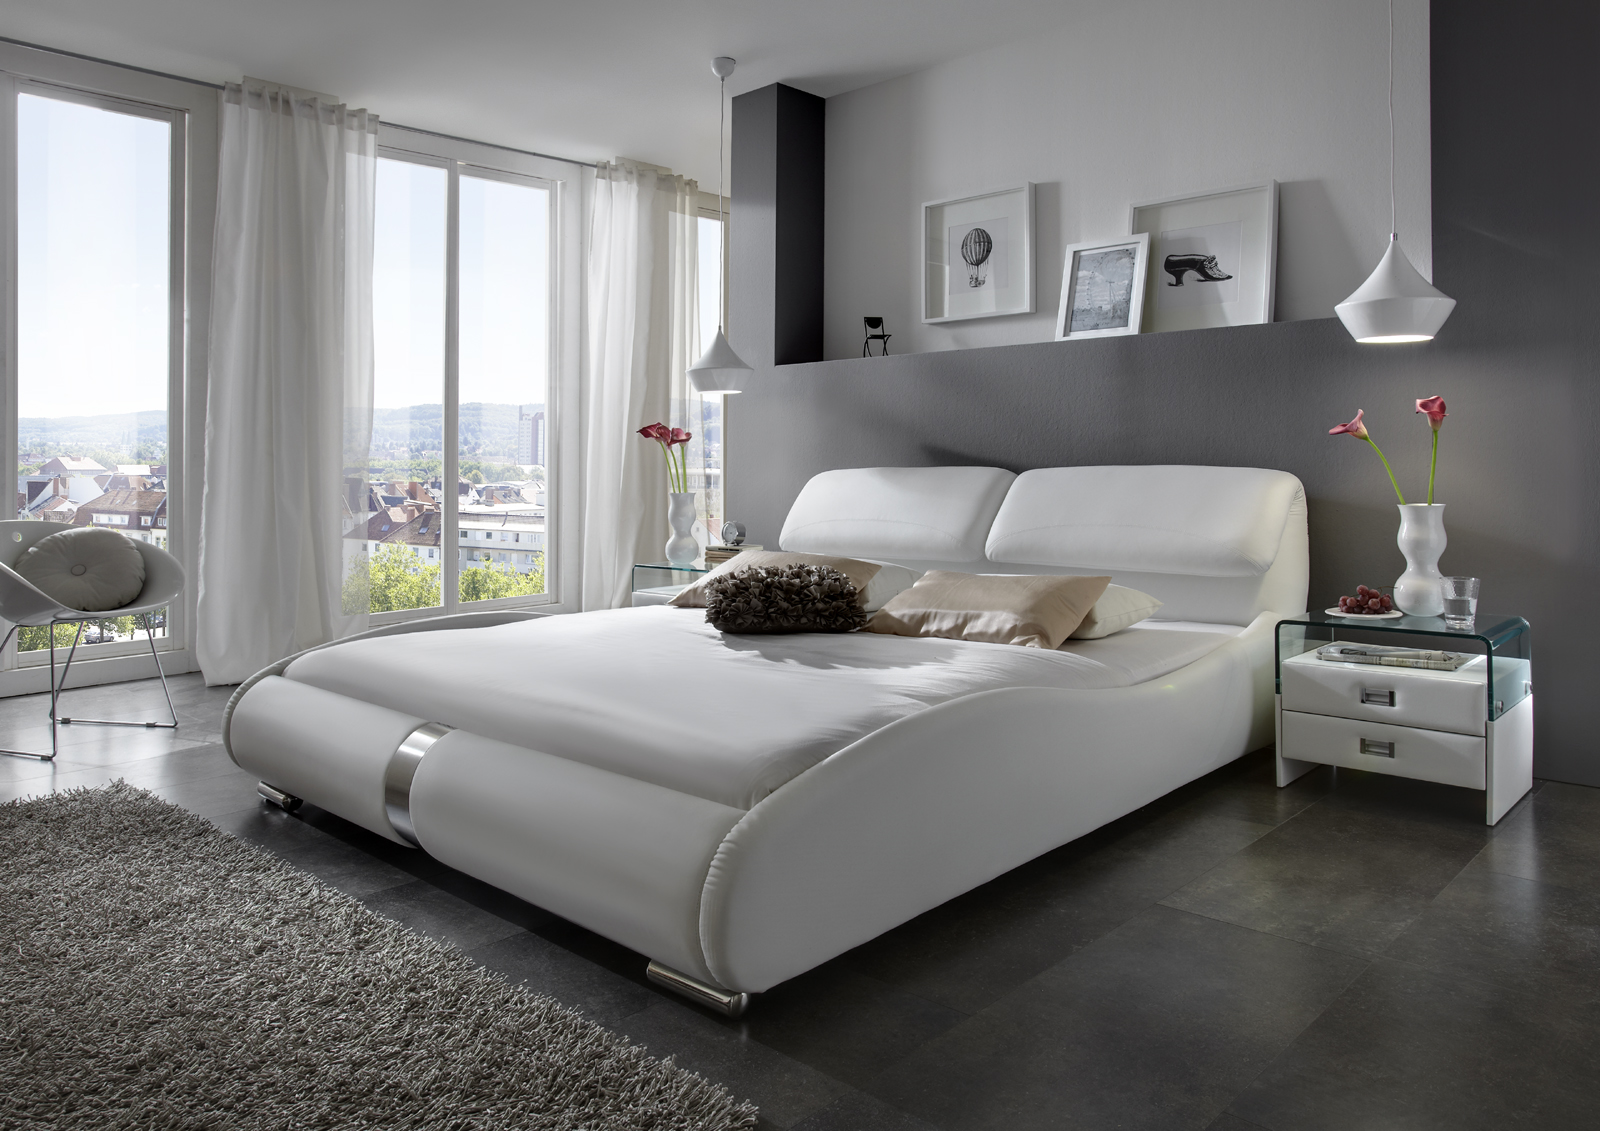 sam polsterbett 180 x 200 cm wei lucca g nstig. Black Bedroom Furniture Sets. Home Design Ideas